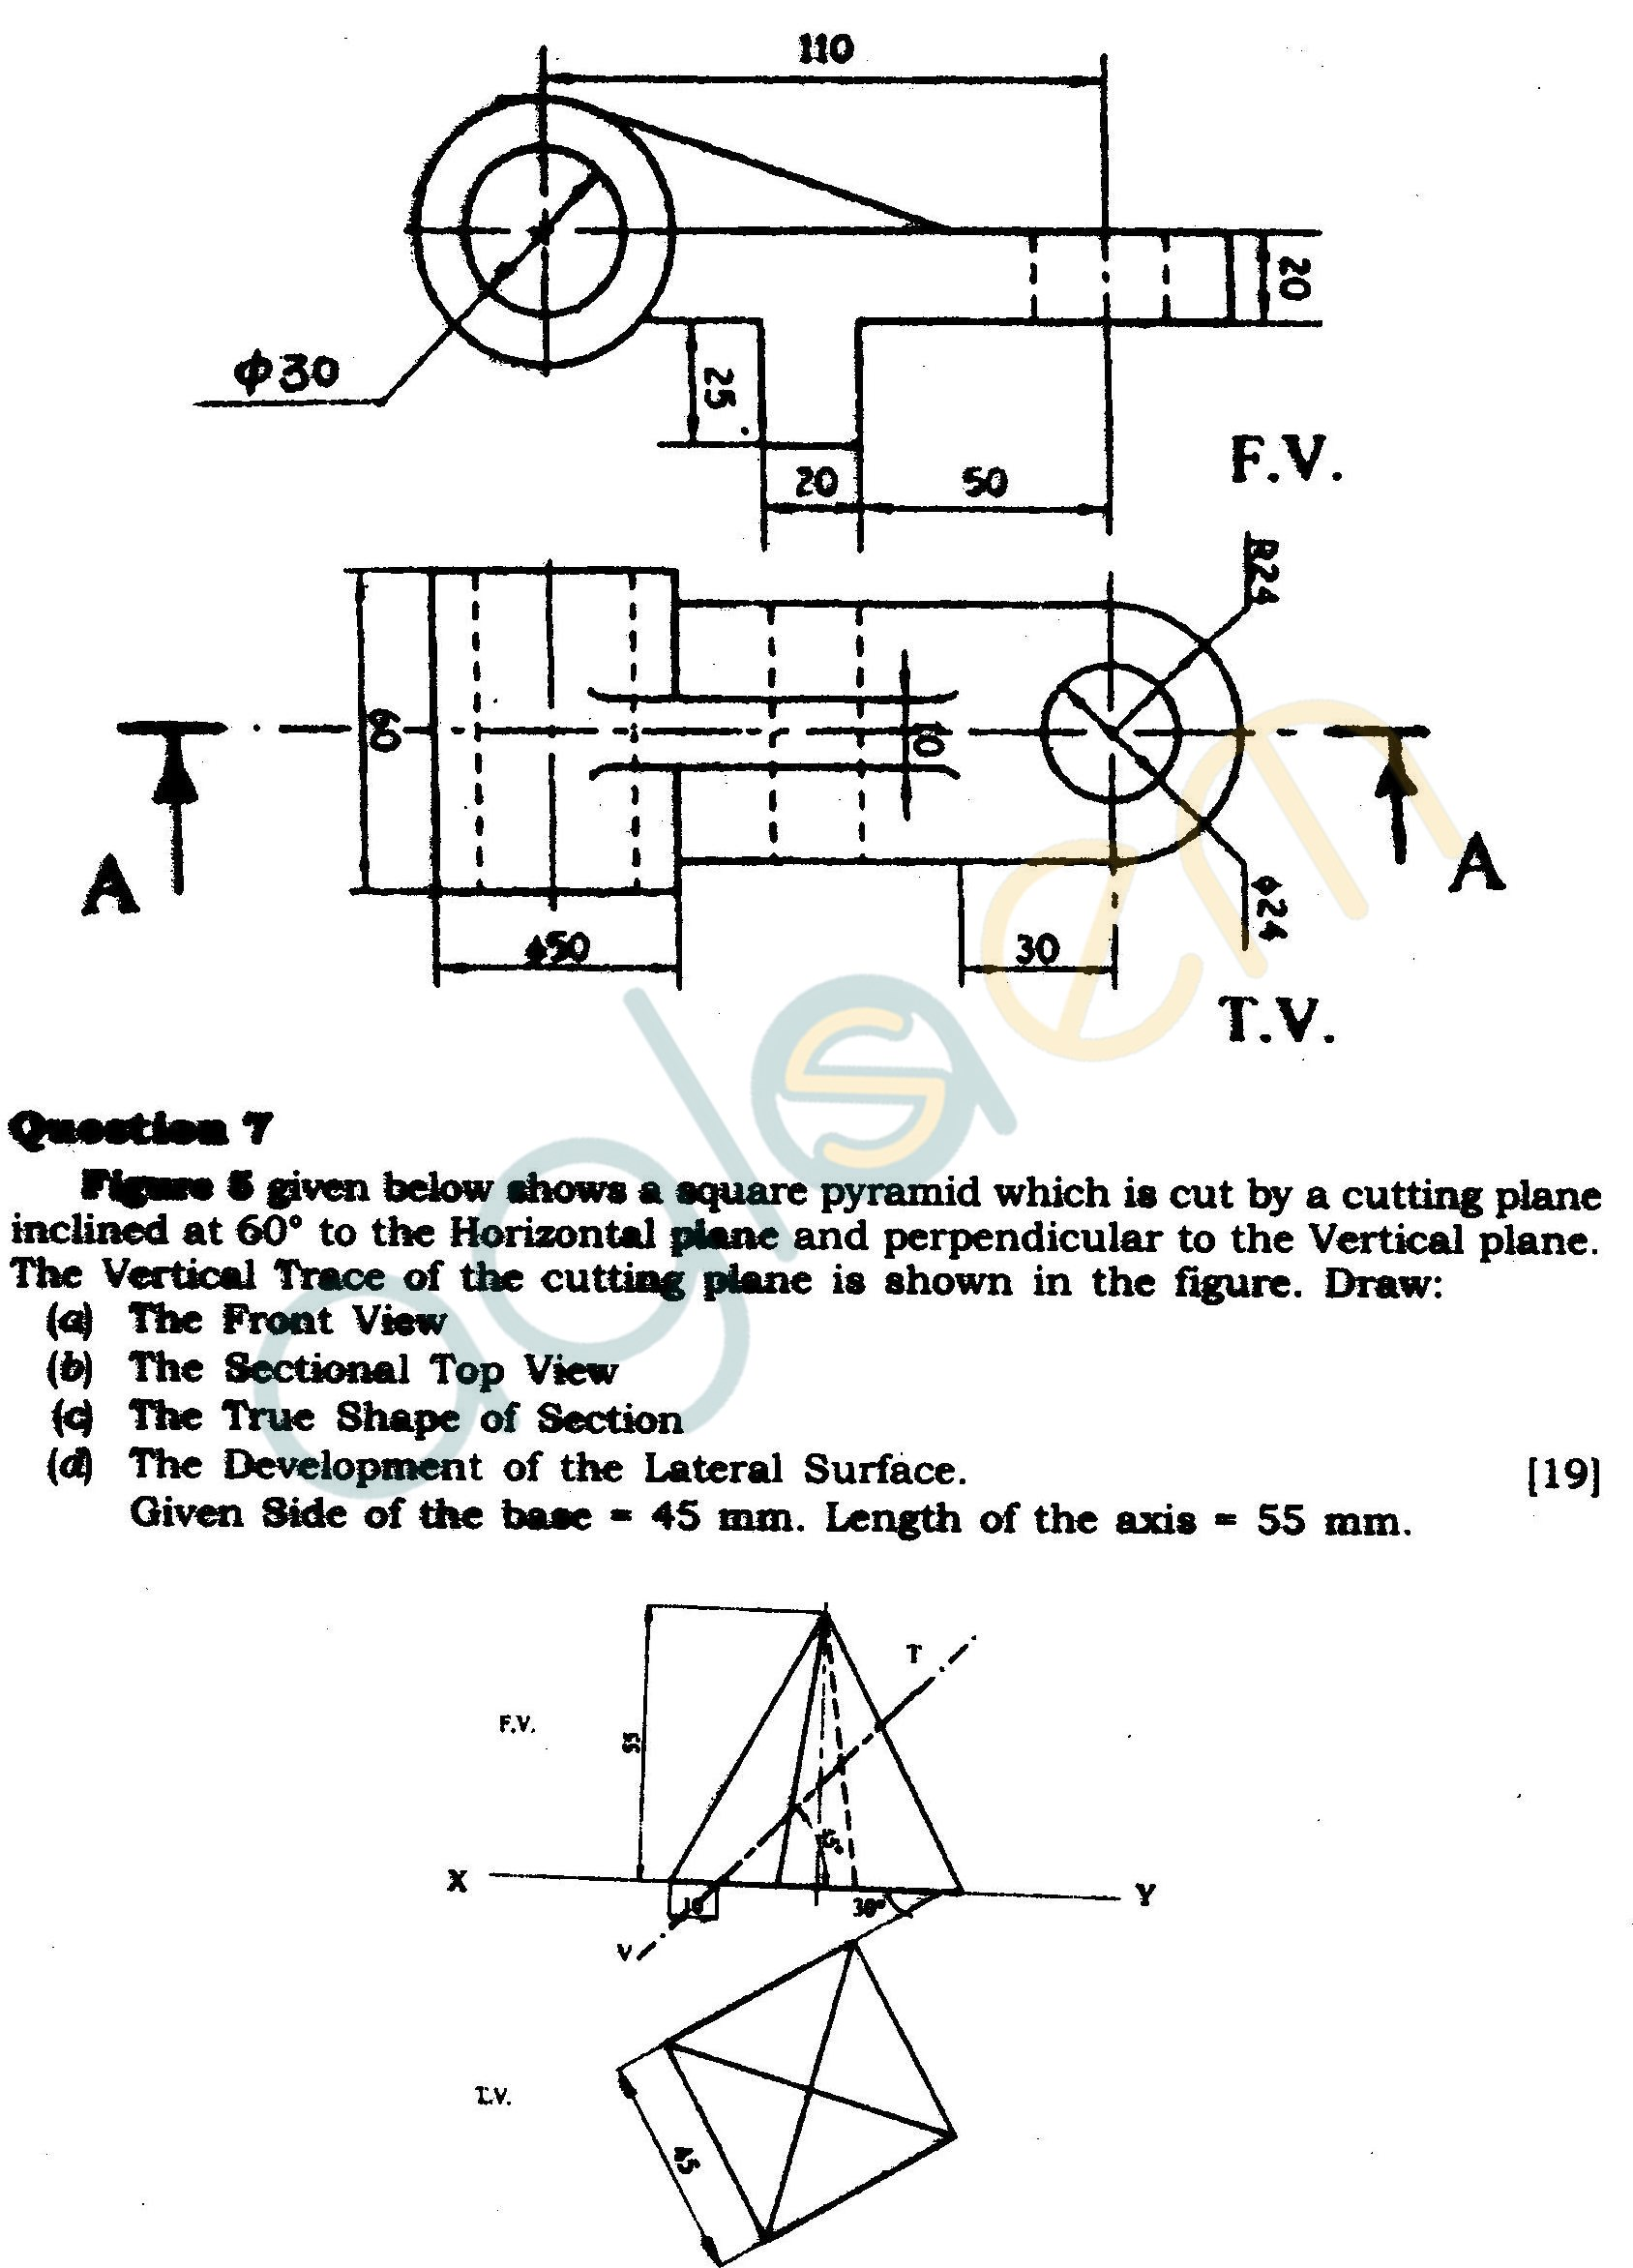 White Rodgers Thermostat 1f78 Wiring Diagram